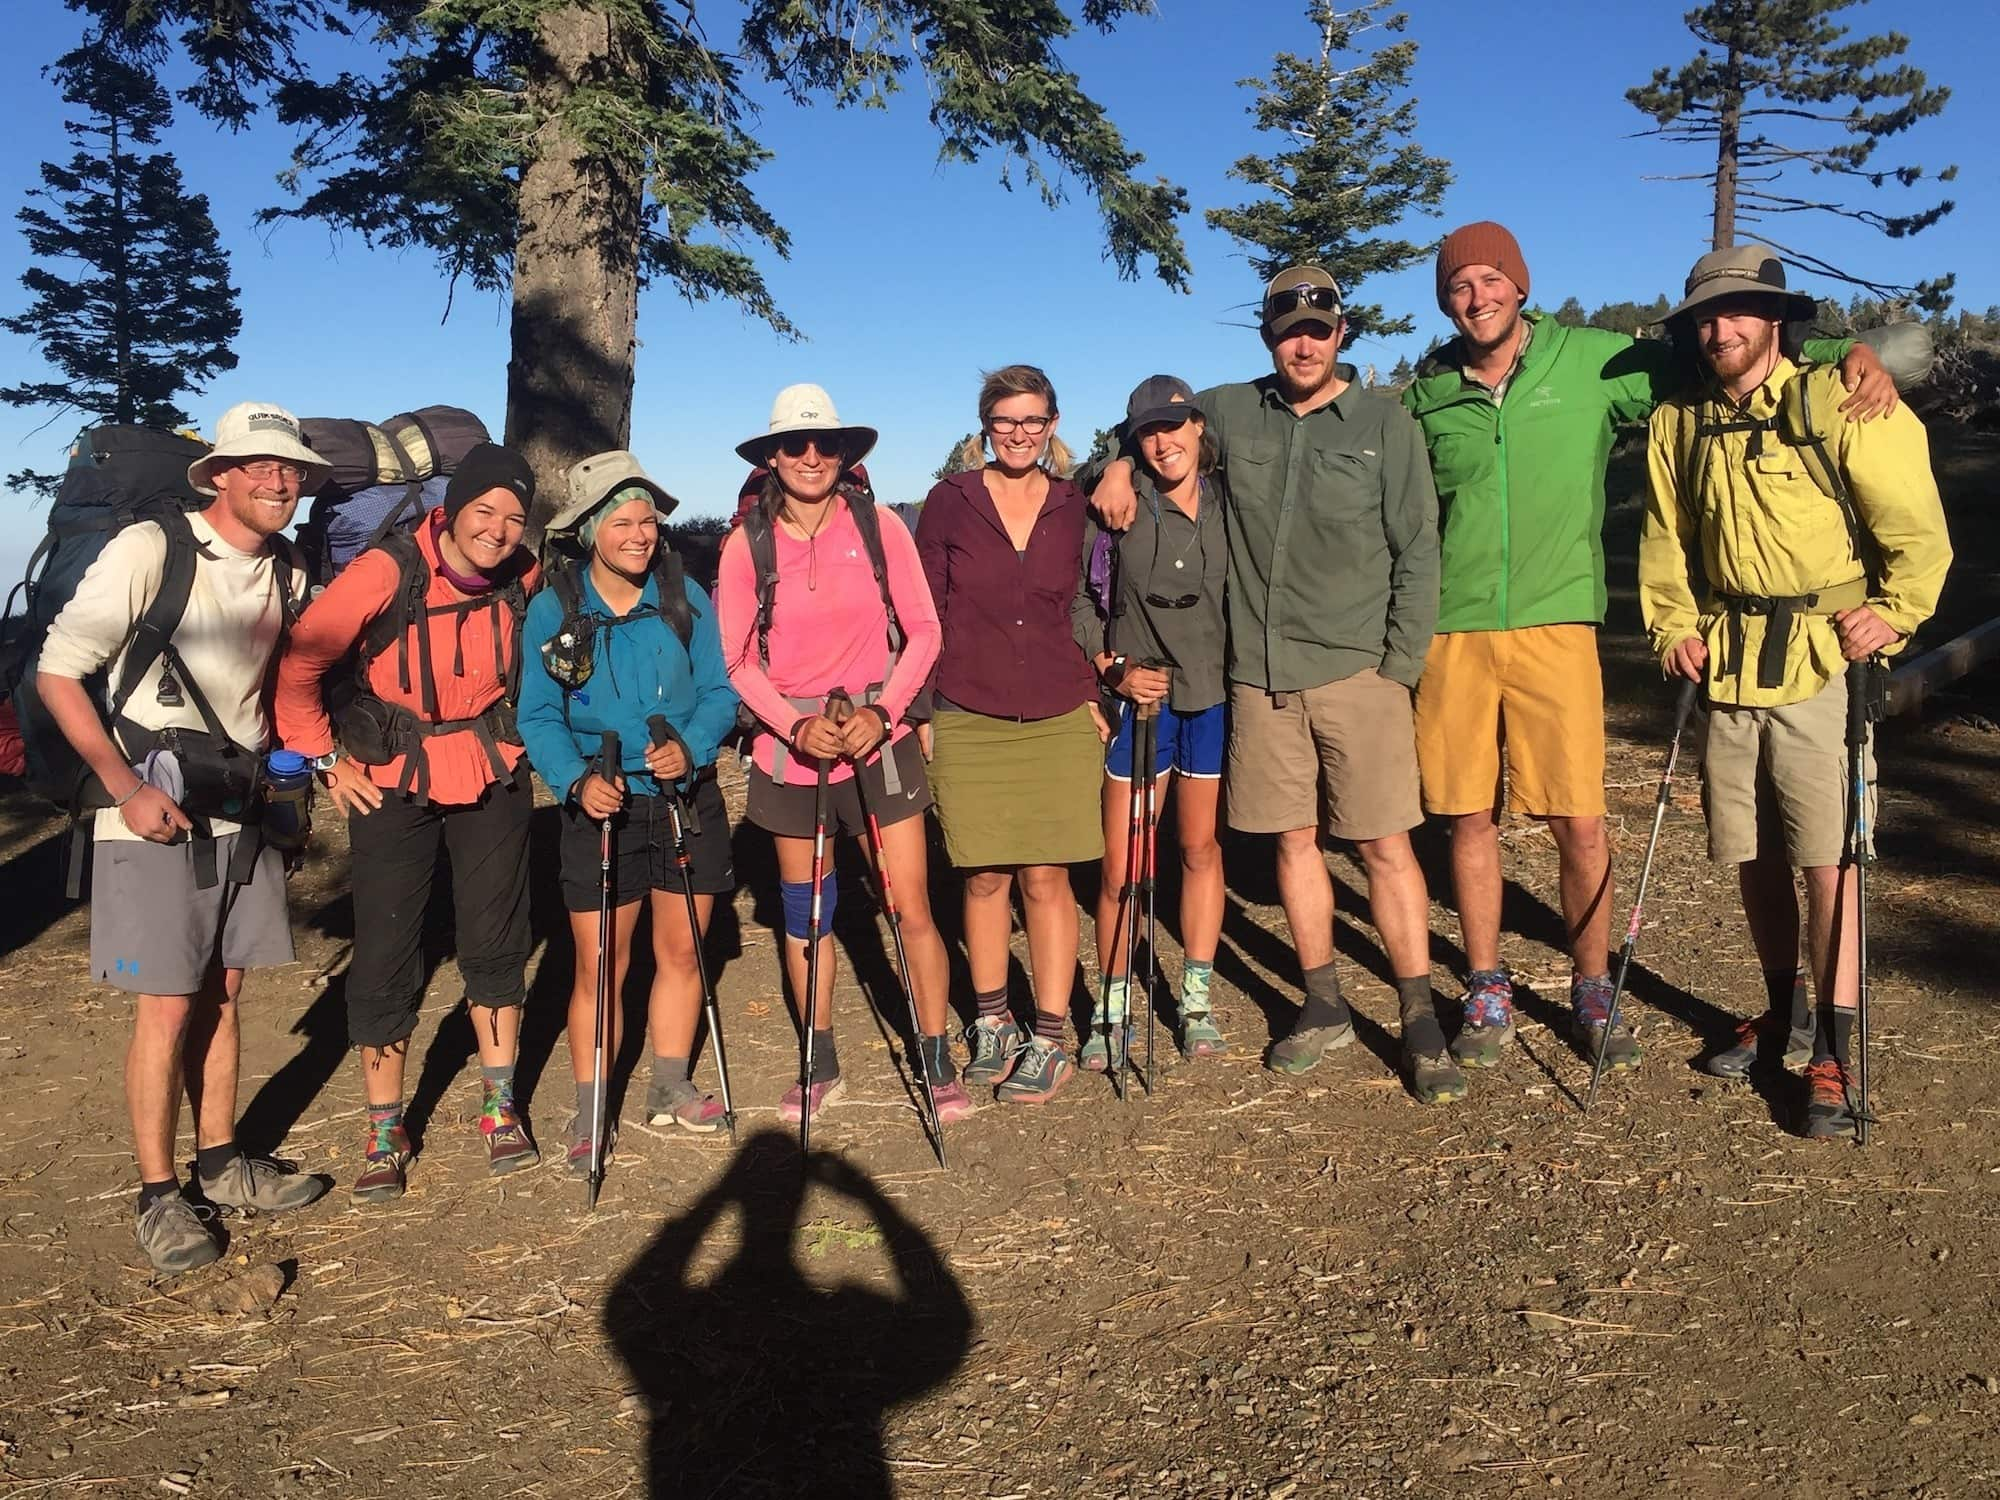 Planning a long-distance backpacking trip? Looking for lightweight backpacking gear recommendations? Start with this complete Pacific Crest Trail gear list that includes every single item packed for a 5-month thru-hike from Mexico to Canada.